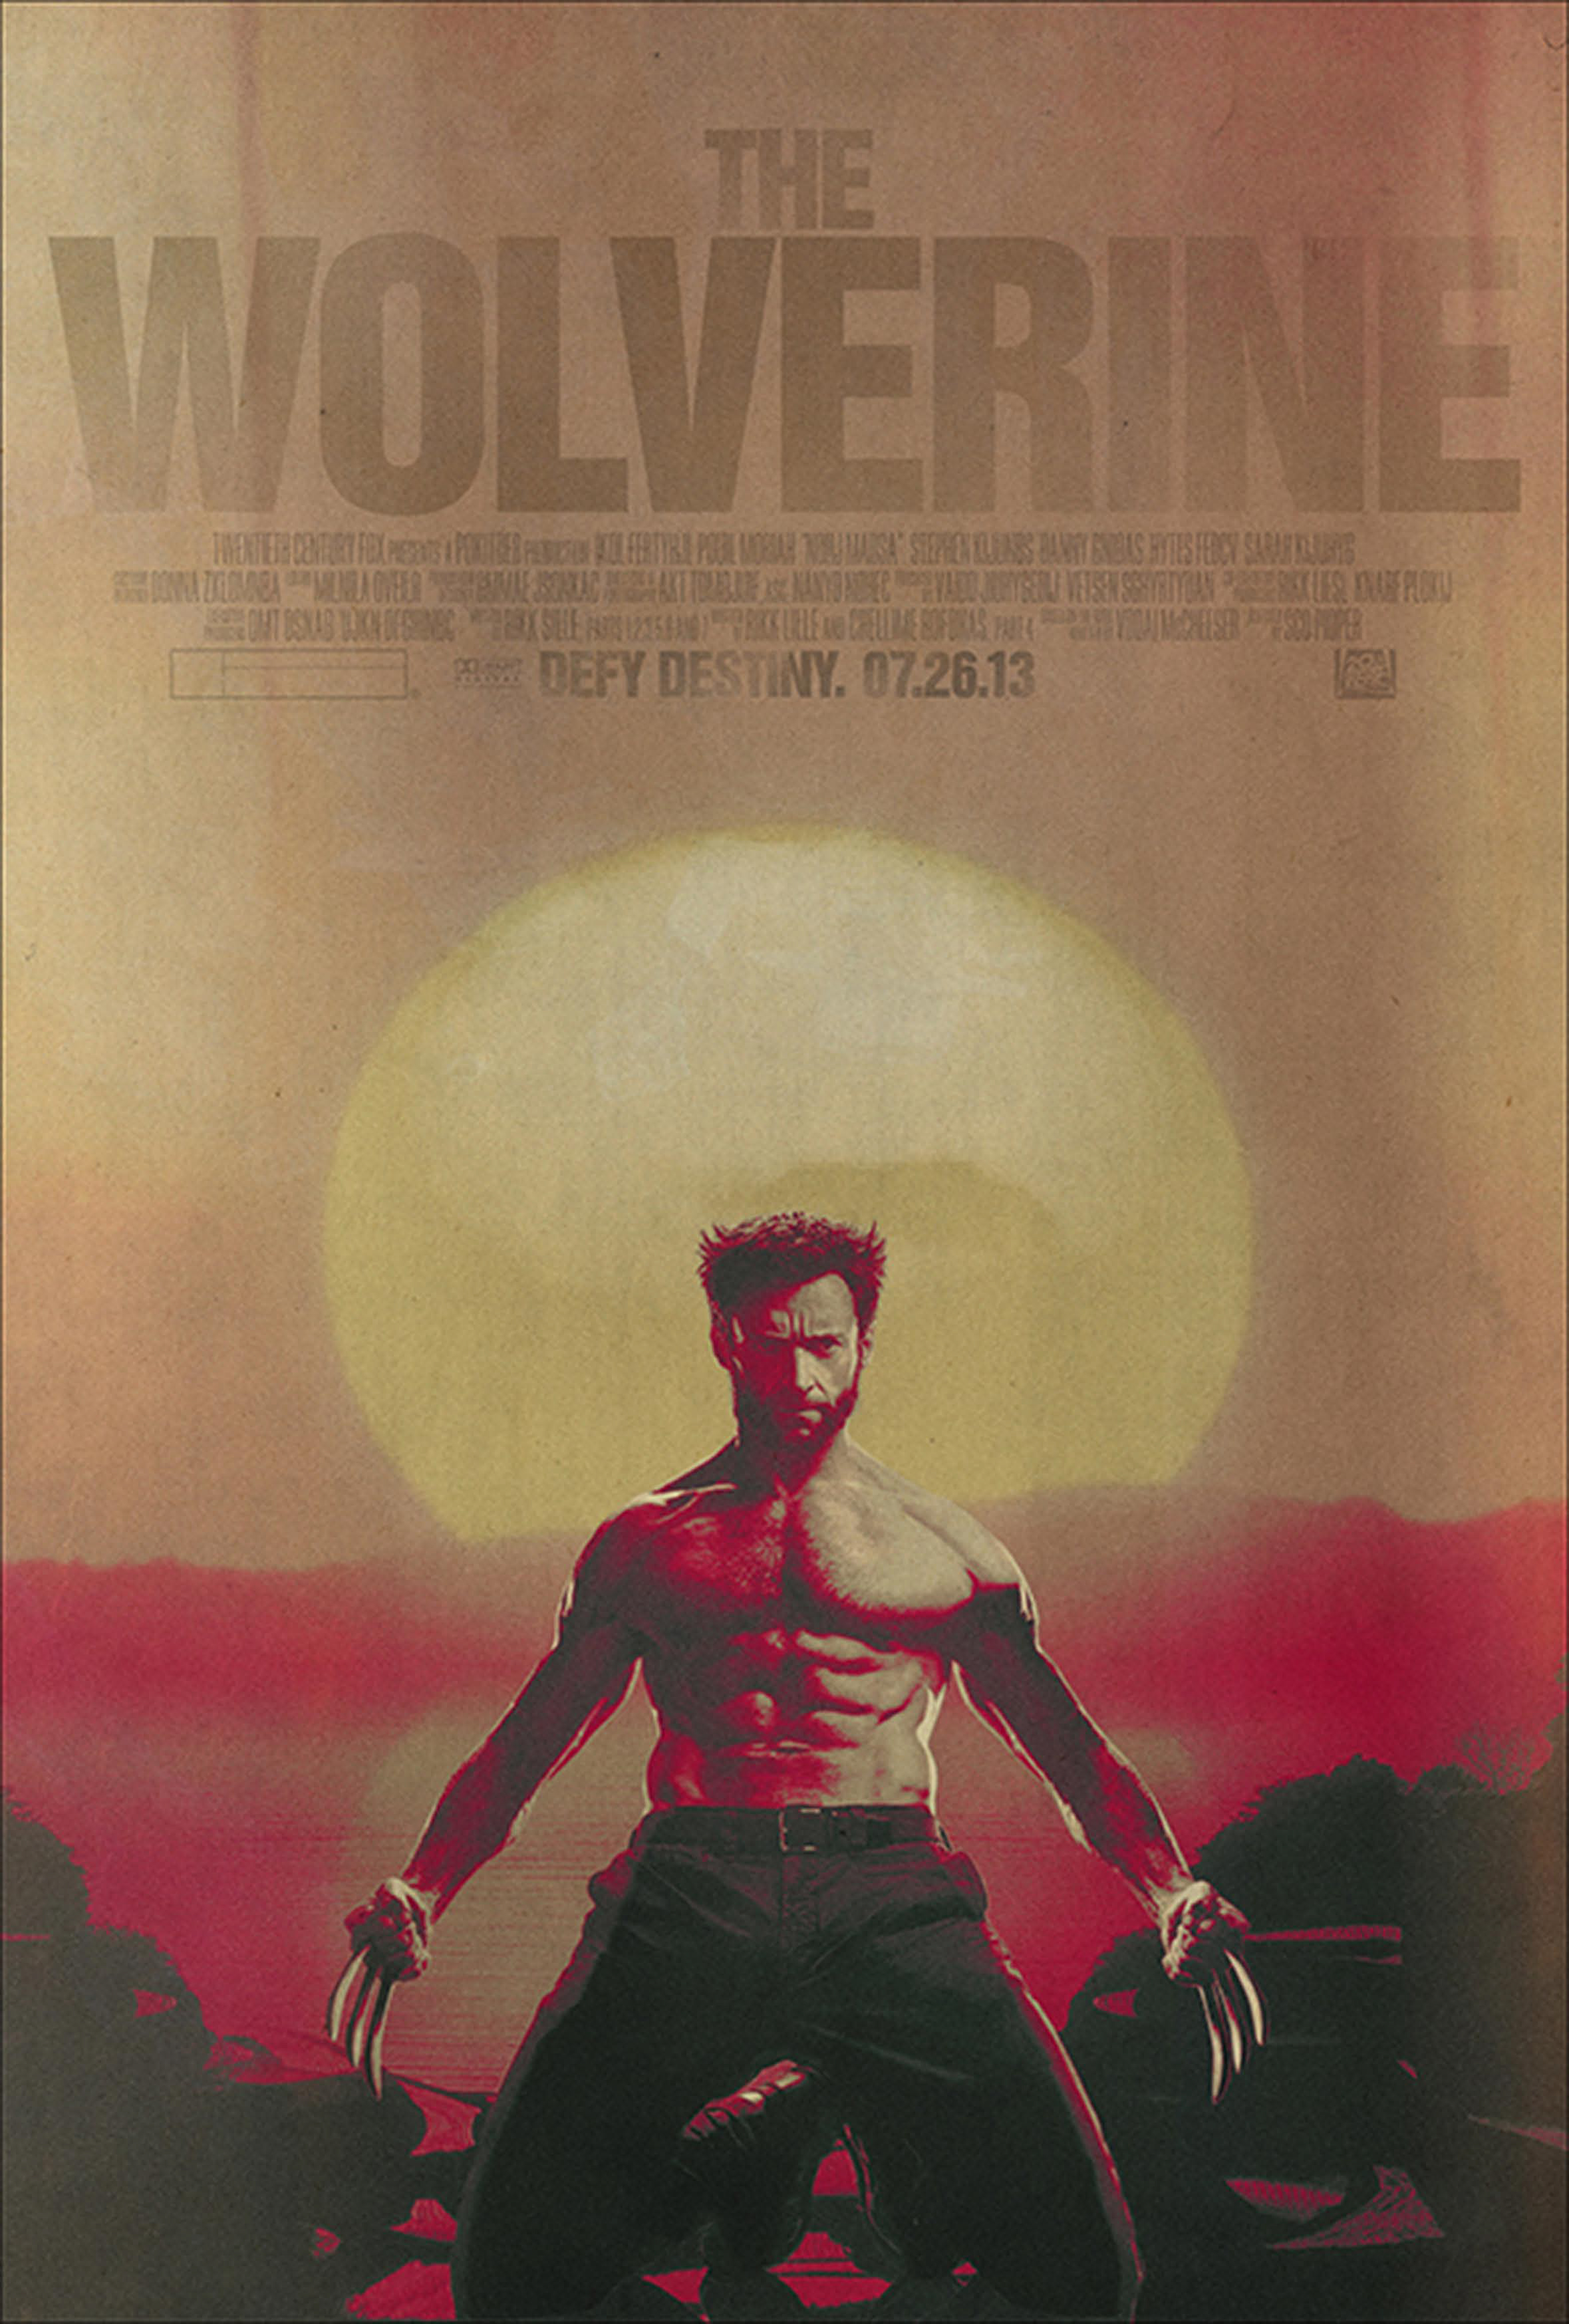 The Wolverine - Fox Searchlight